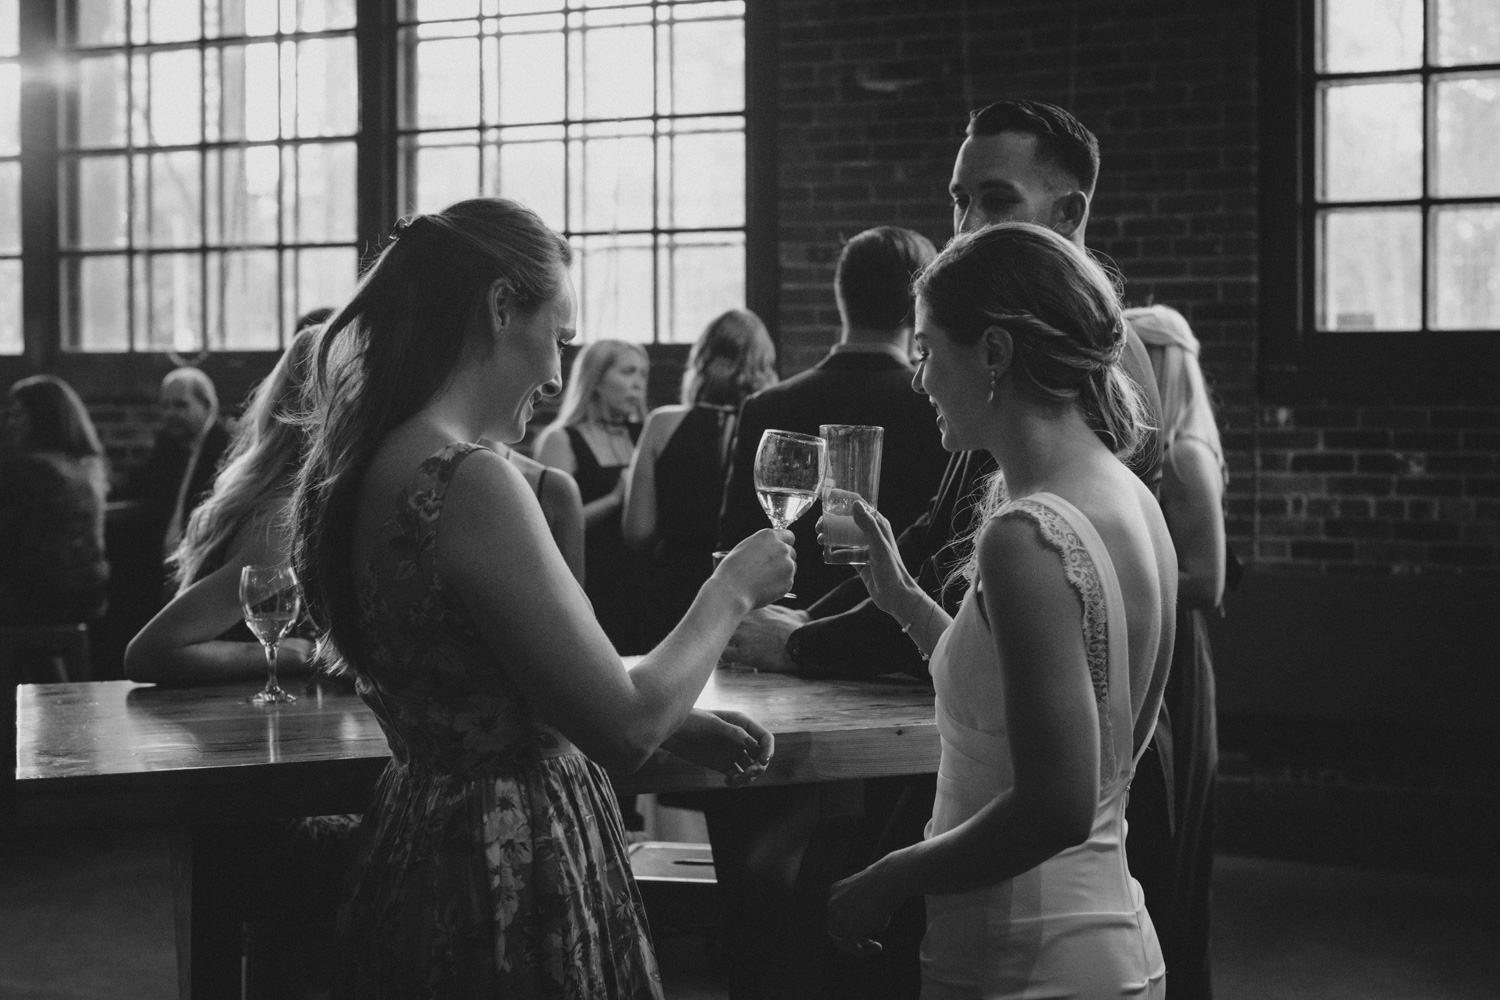 steam-whistle-brewery-wedding-photos-toronto-wedding-photography-by-sam-wong-of-artanis-collective_01046